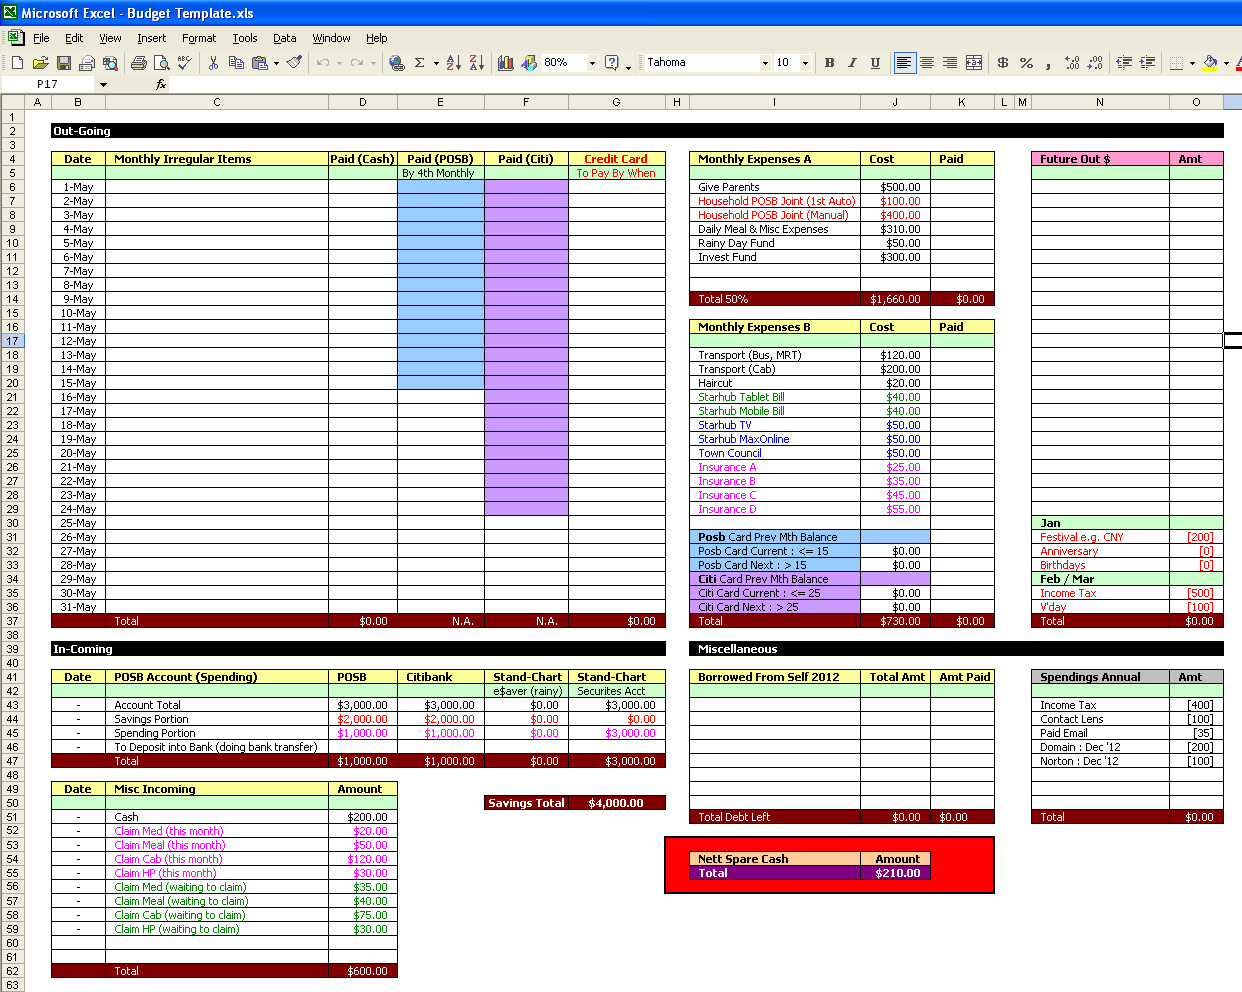 Home Improvement Spreadsheet Throughout Renovation Estimate Template Free Home Renovation Budget Spreadsheet